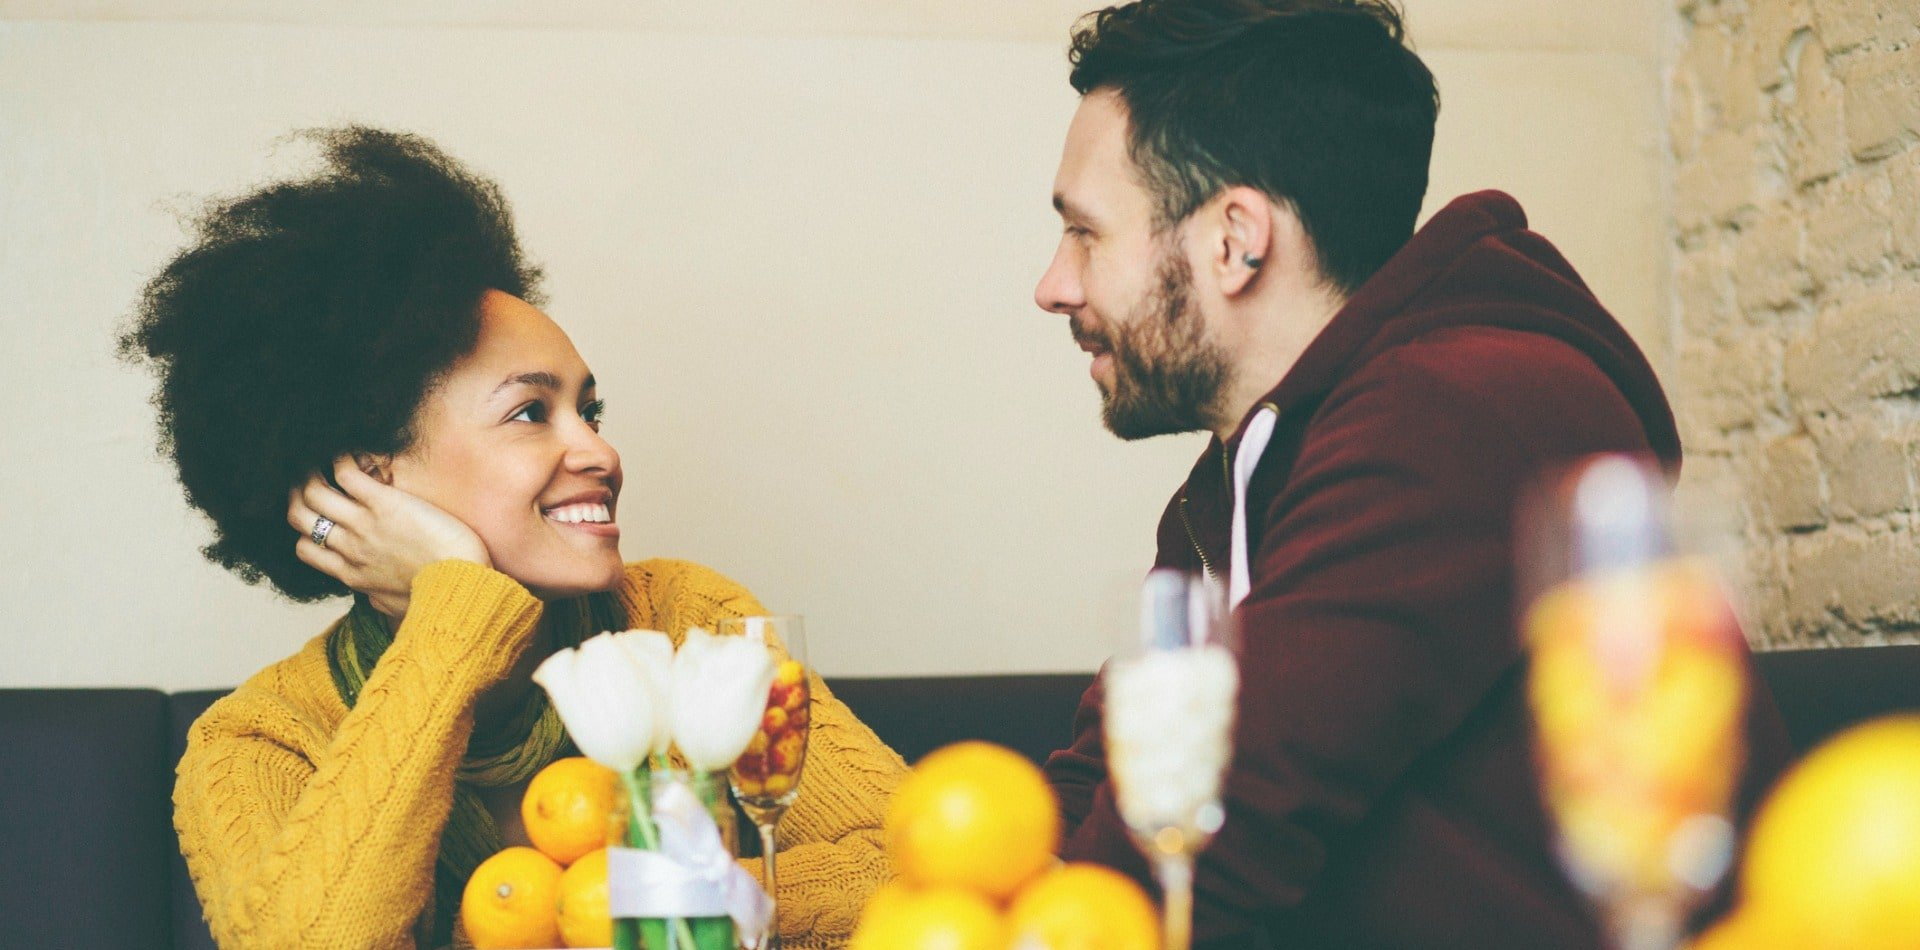 Top Local Dating Sites to Find Any Kinds of Relationships